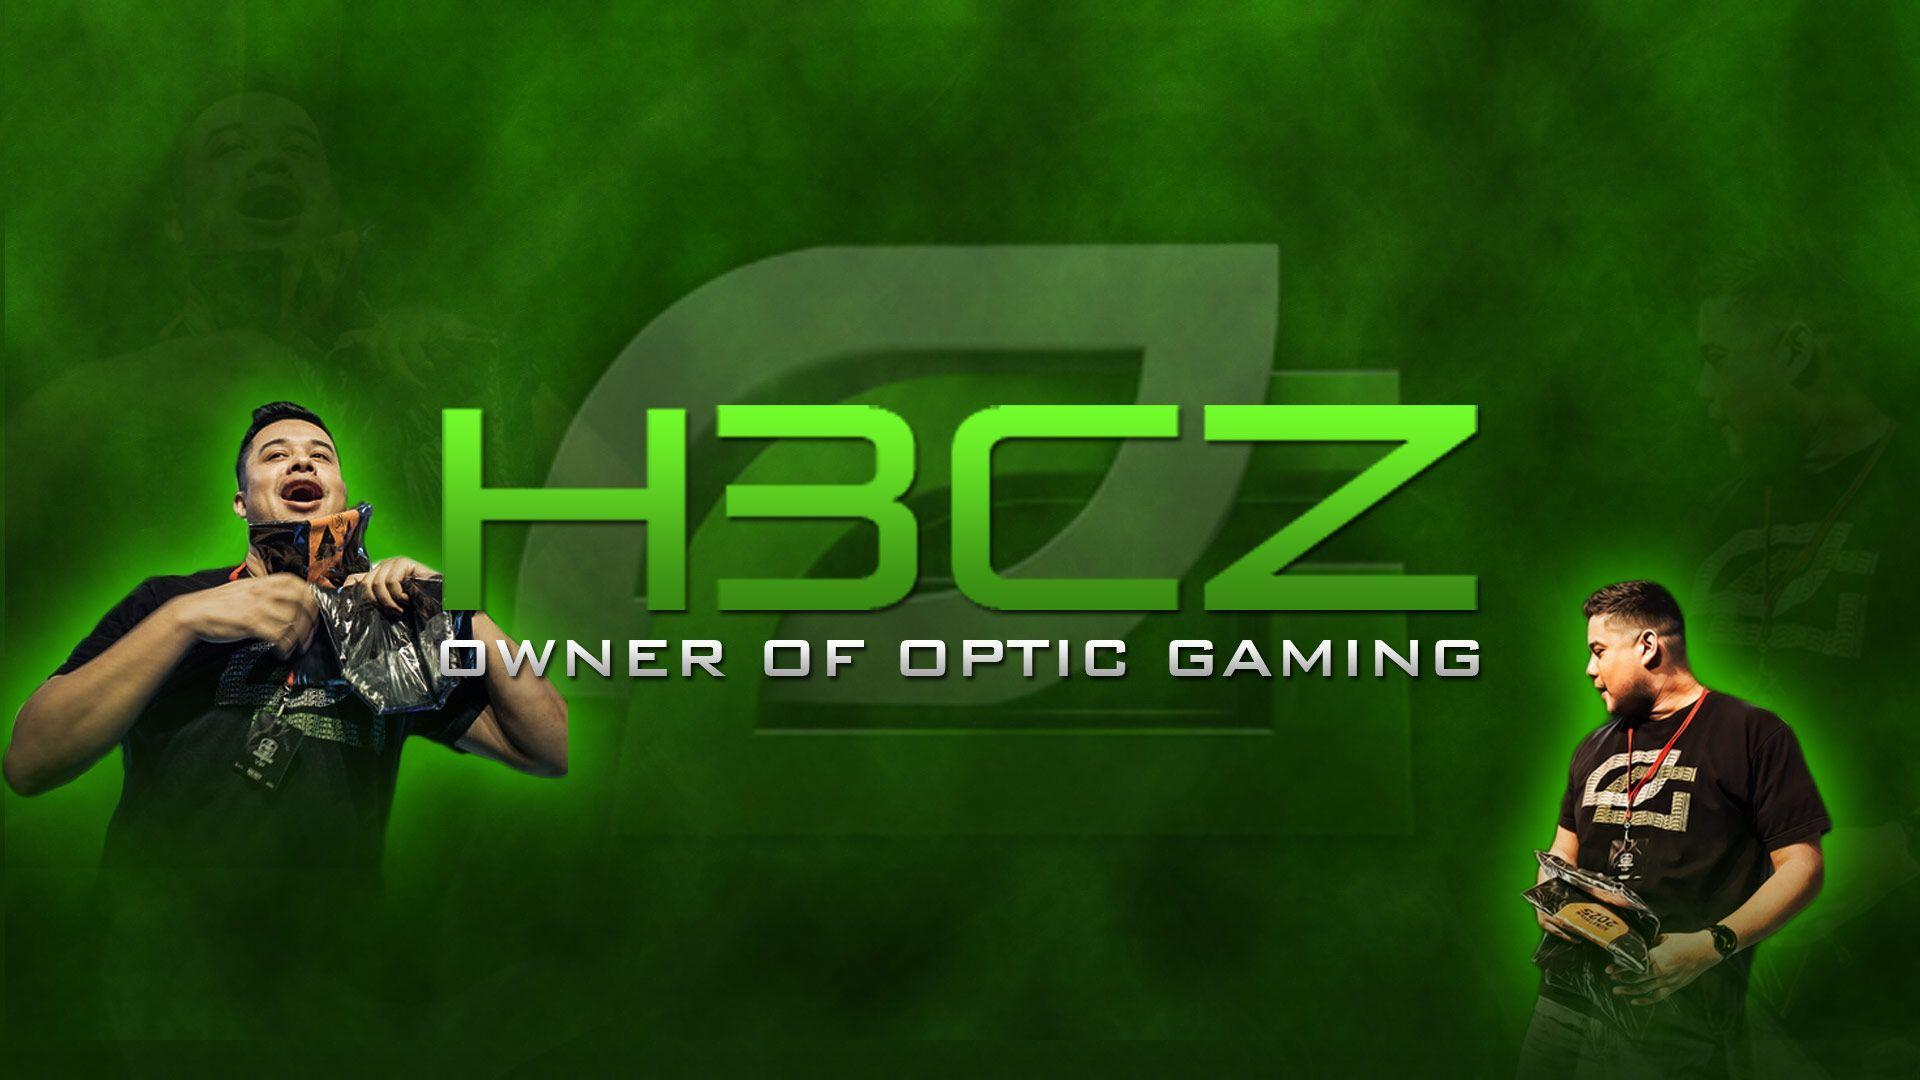 Game Wallpaper: Optic Gaming Roster Photo Wallpapers For HD